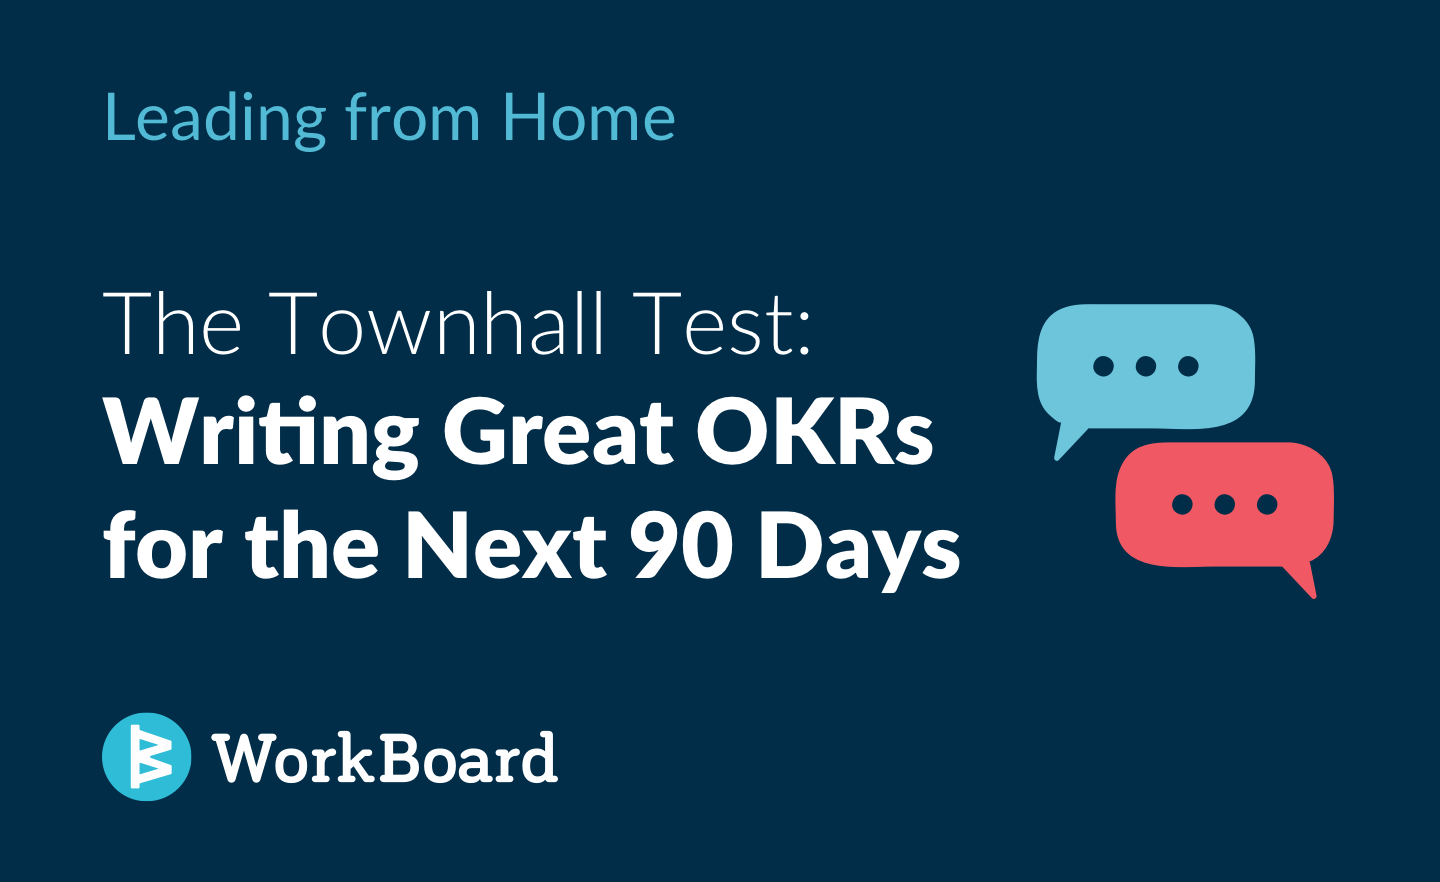 Blog Post: The Townhall Test: Writing Great OKRs for the Next 90 Days